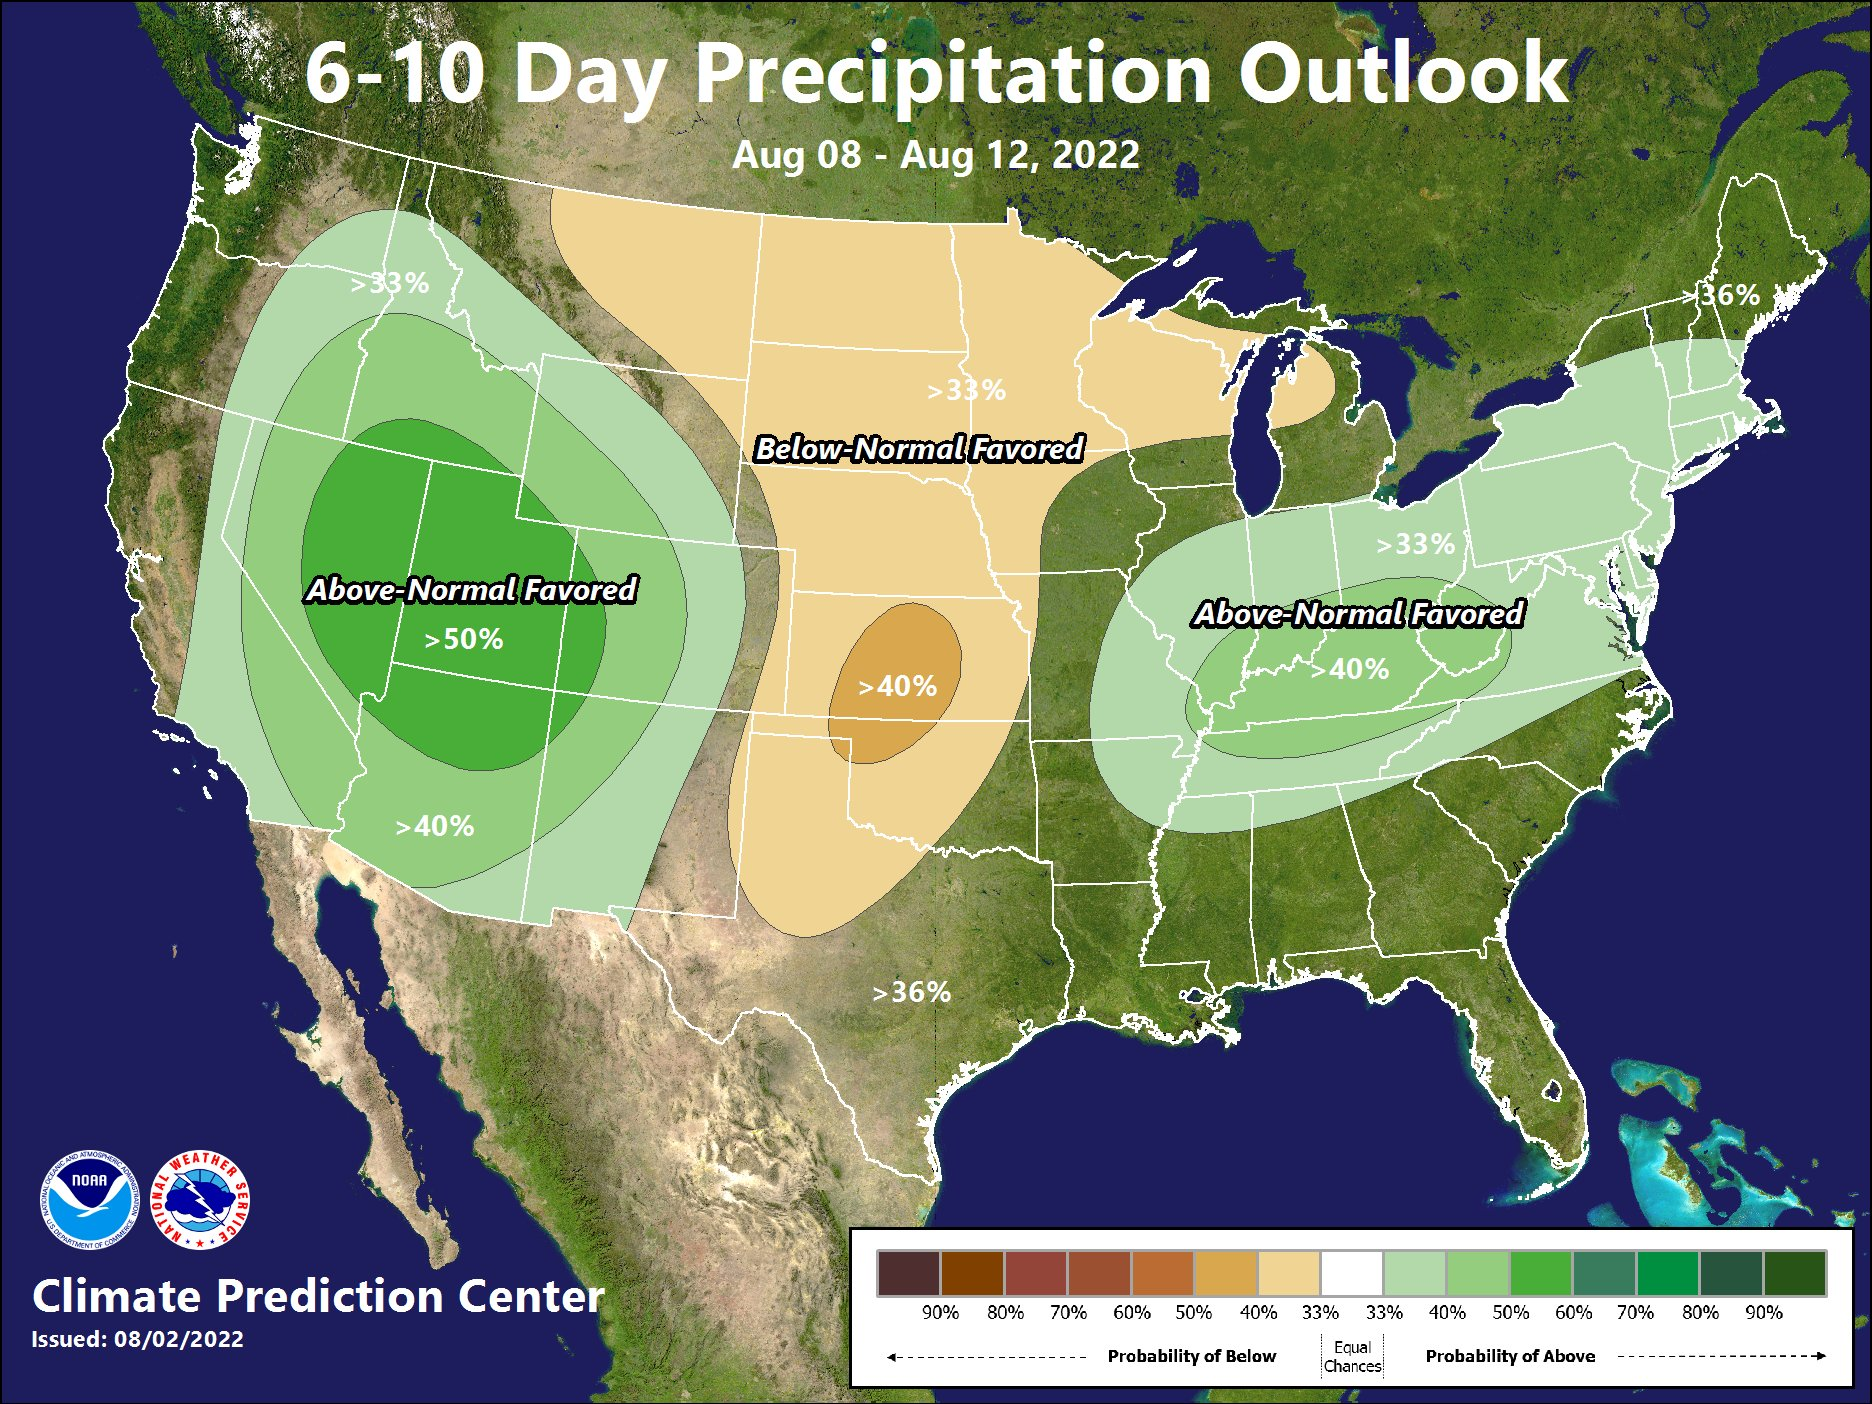 6 - 10 Day Precipitation Outlook